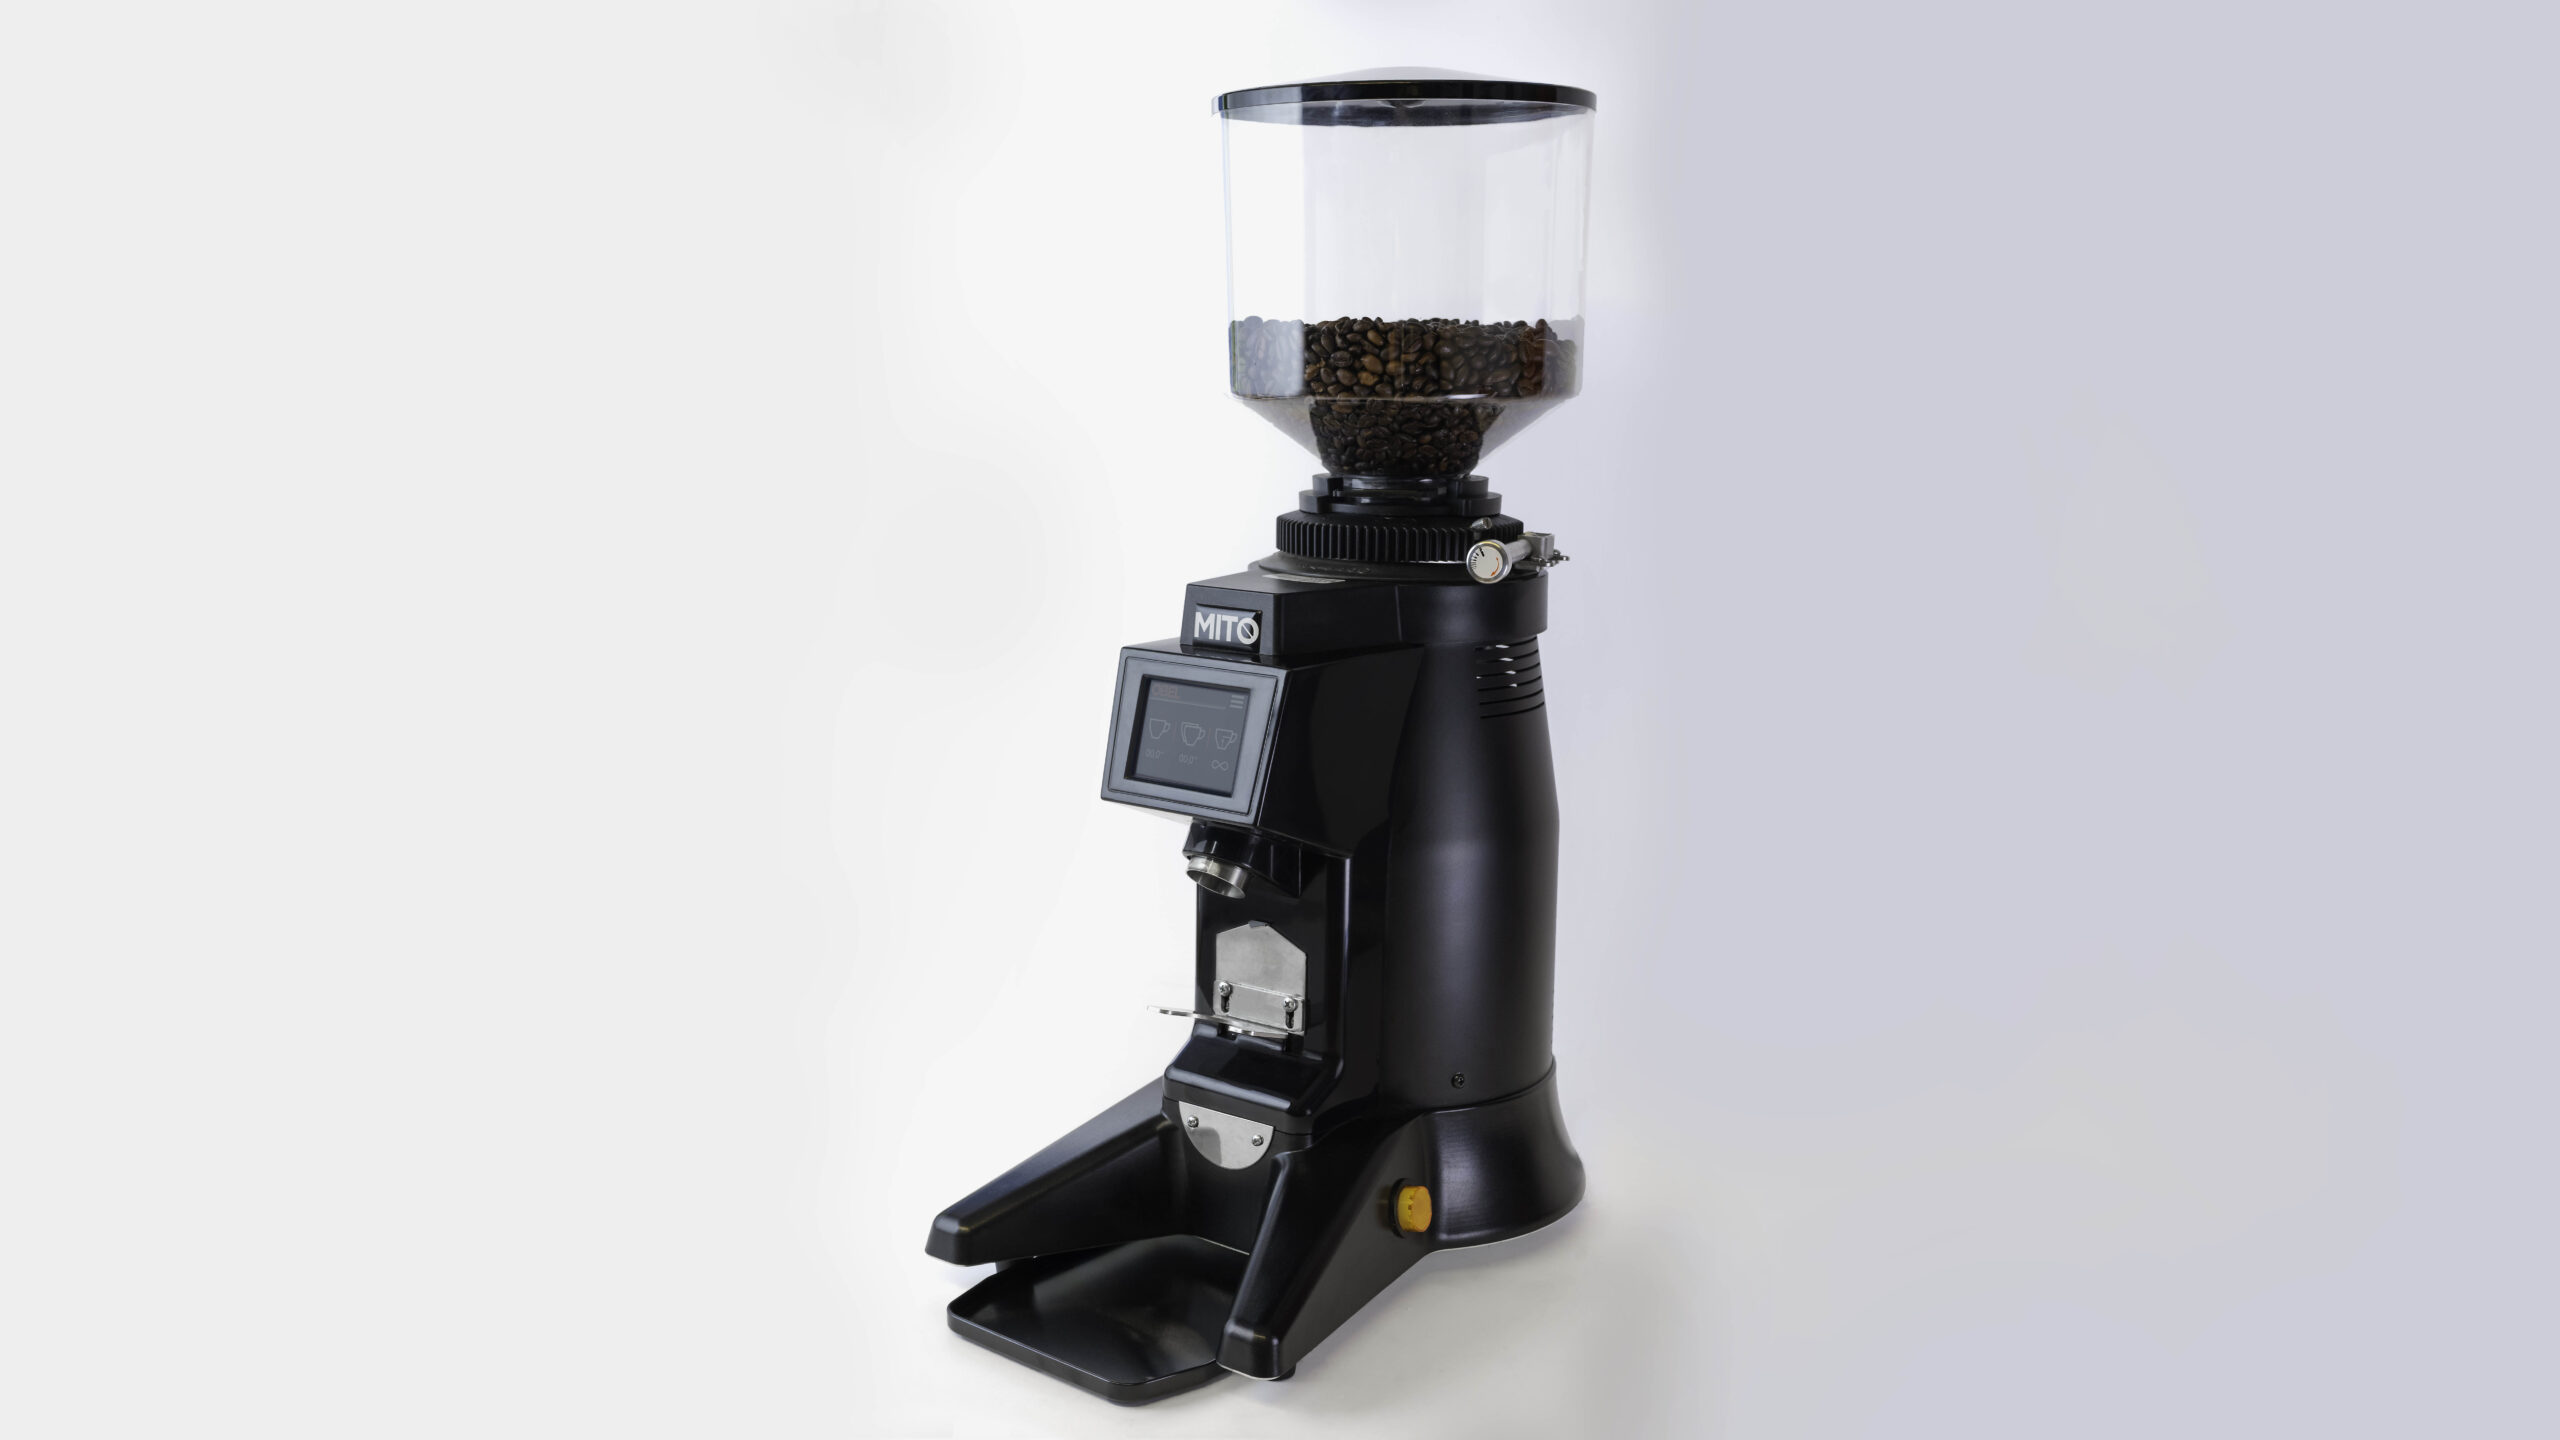 MACINACAFFE PROFESSIONALE ISTANTANEO_Mito touch micrometrica_WIDE